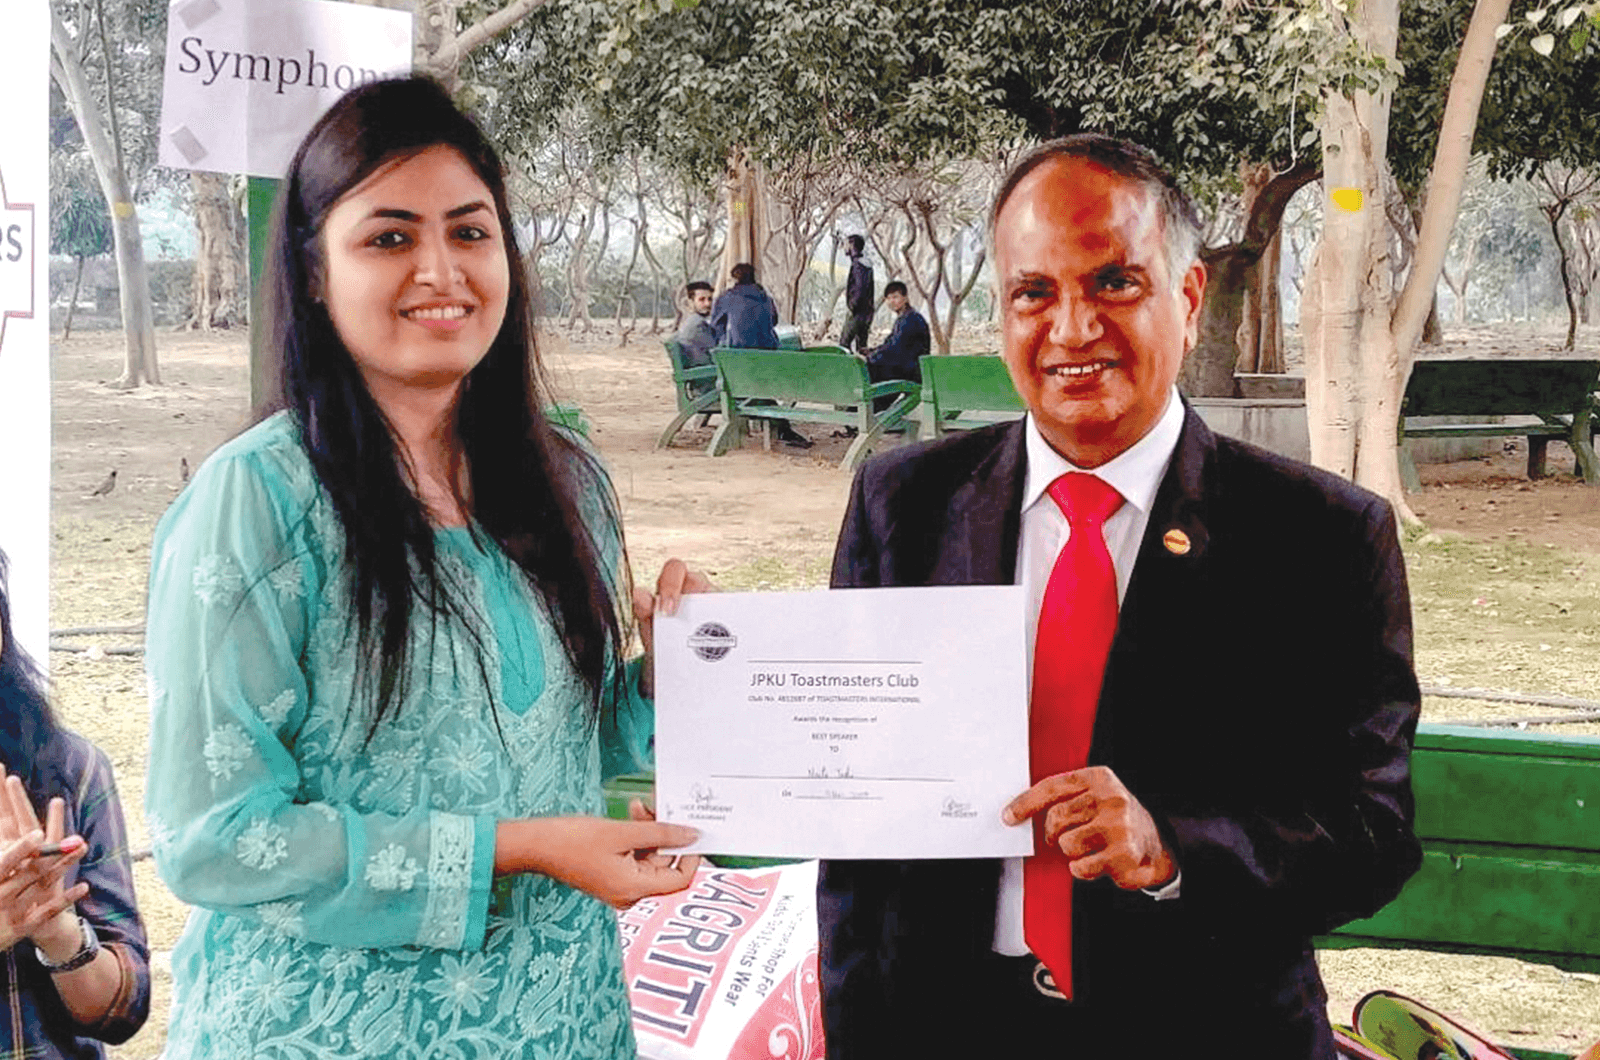 Menon awards a New Delhi JPKU club member the best speaker certificate.